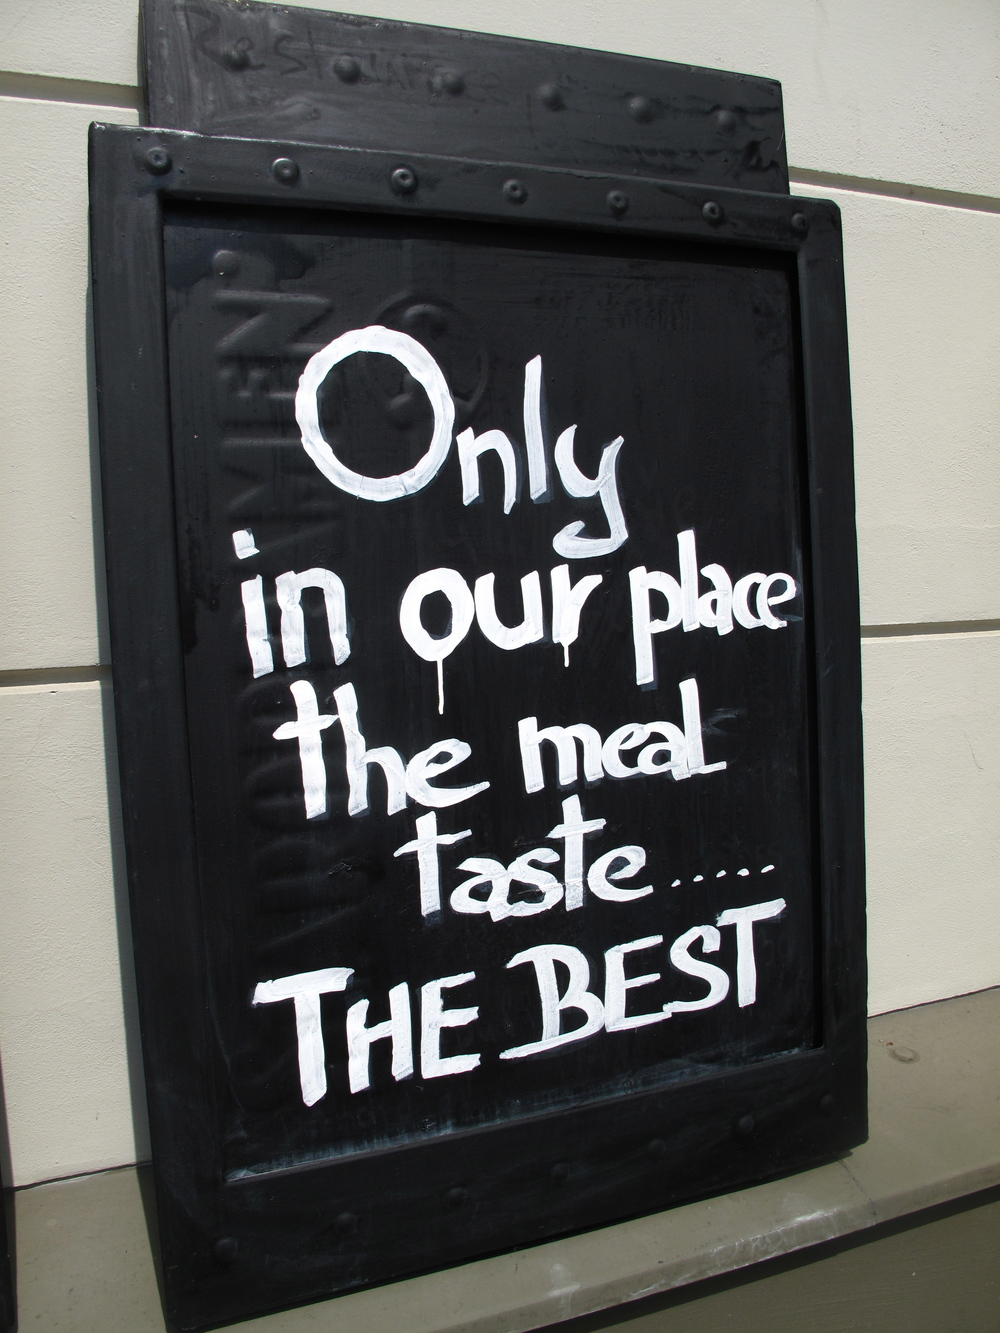 Only in our place, the meal taste the BEST! Funny signs in the Czech Republic